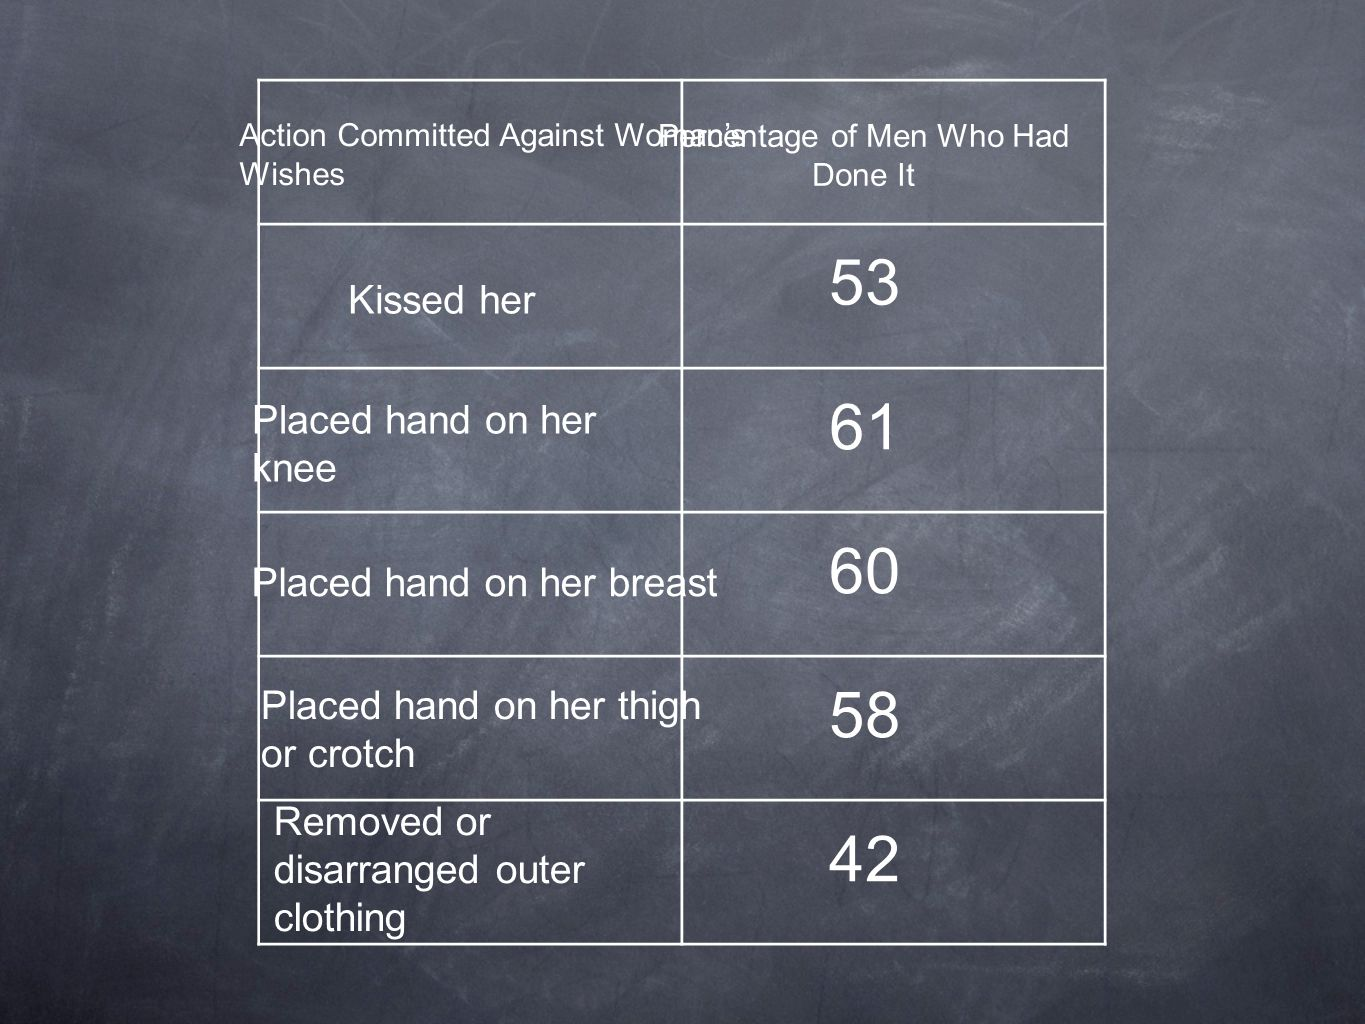 Action Committed Against Woman's Wishes Percentage of Men Who Had Done It Kissed her Placed hand on her knee Placed hand on her breast Placed hand on her thigh or crotch Removed or disarranged outer clothing 53 42 58 60 61